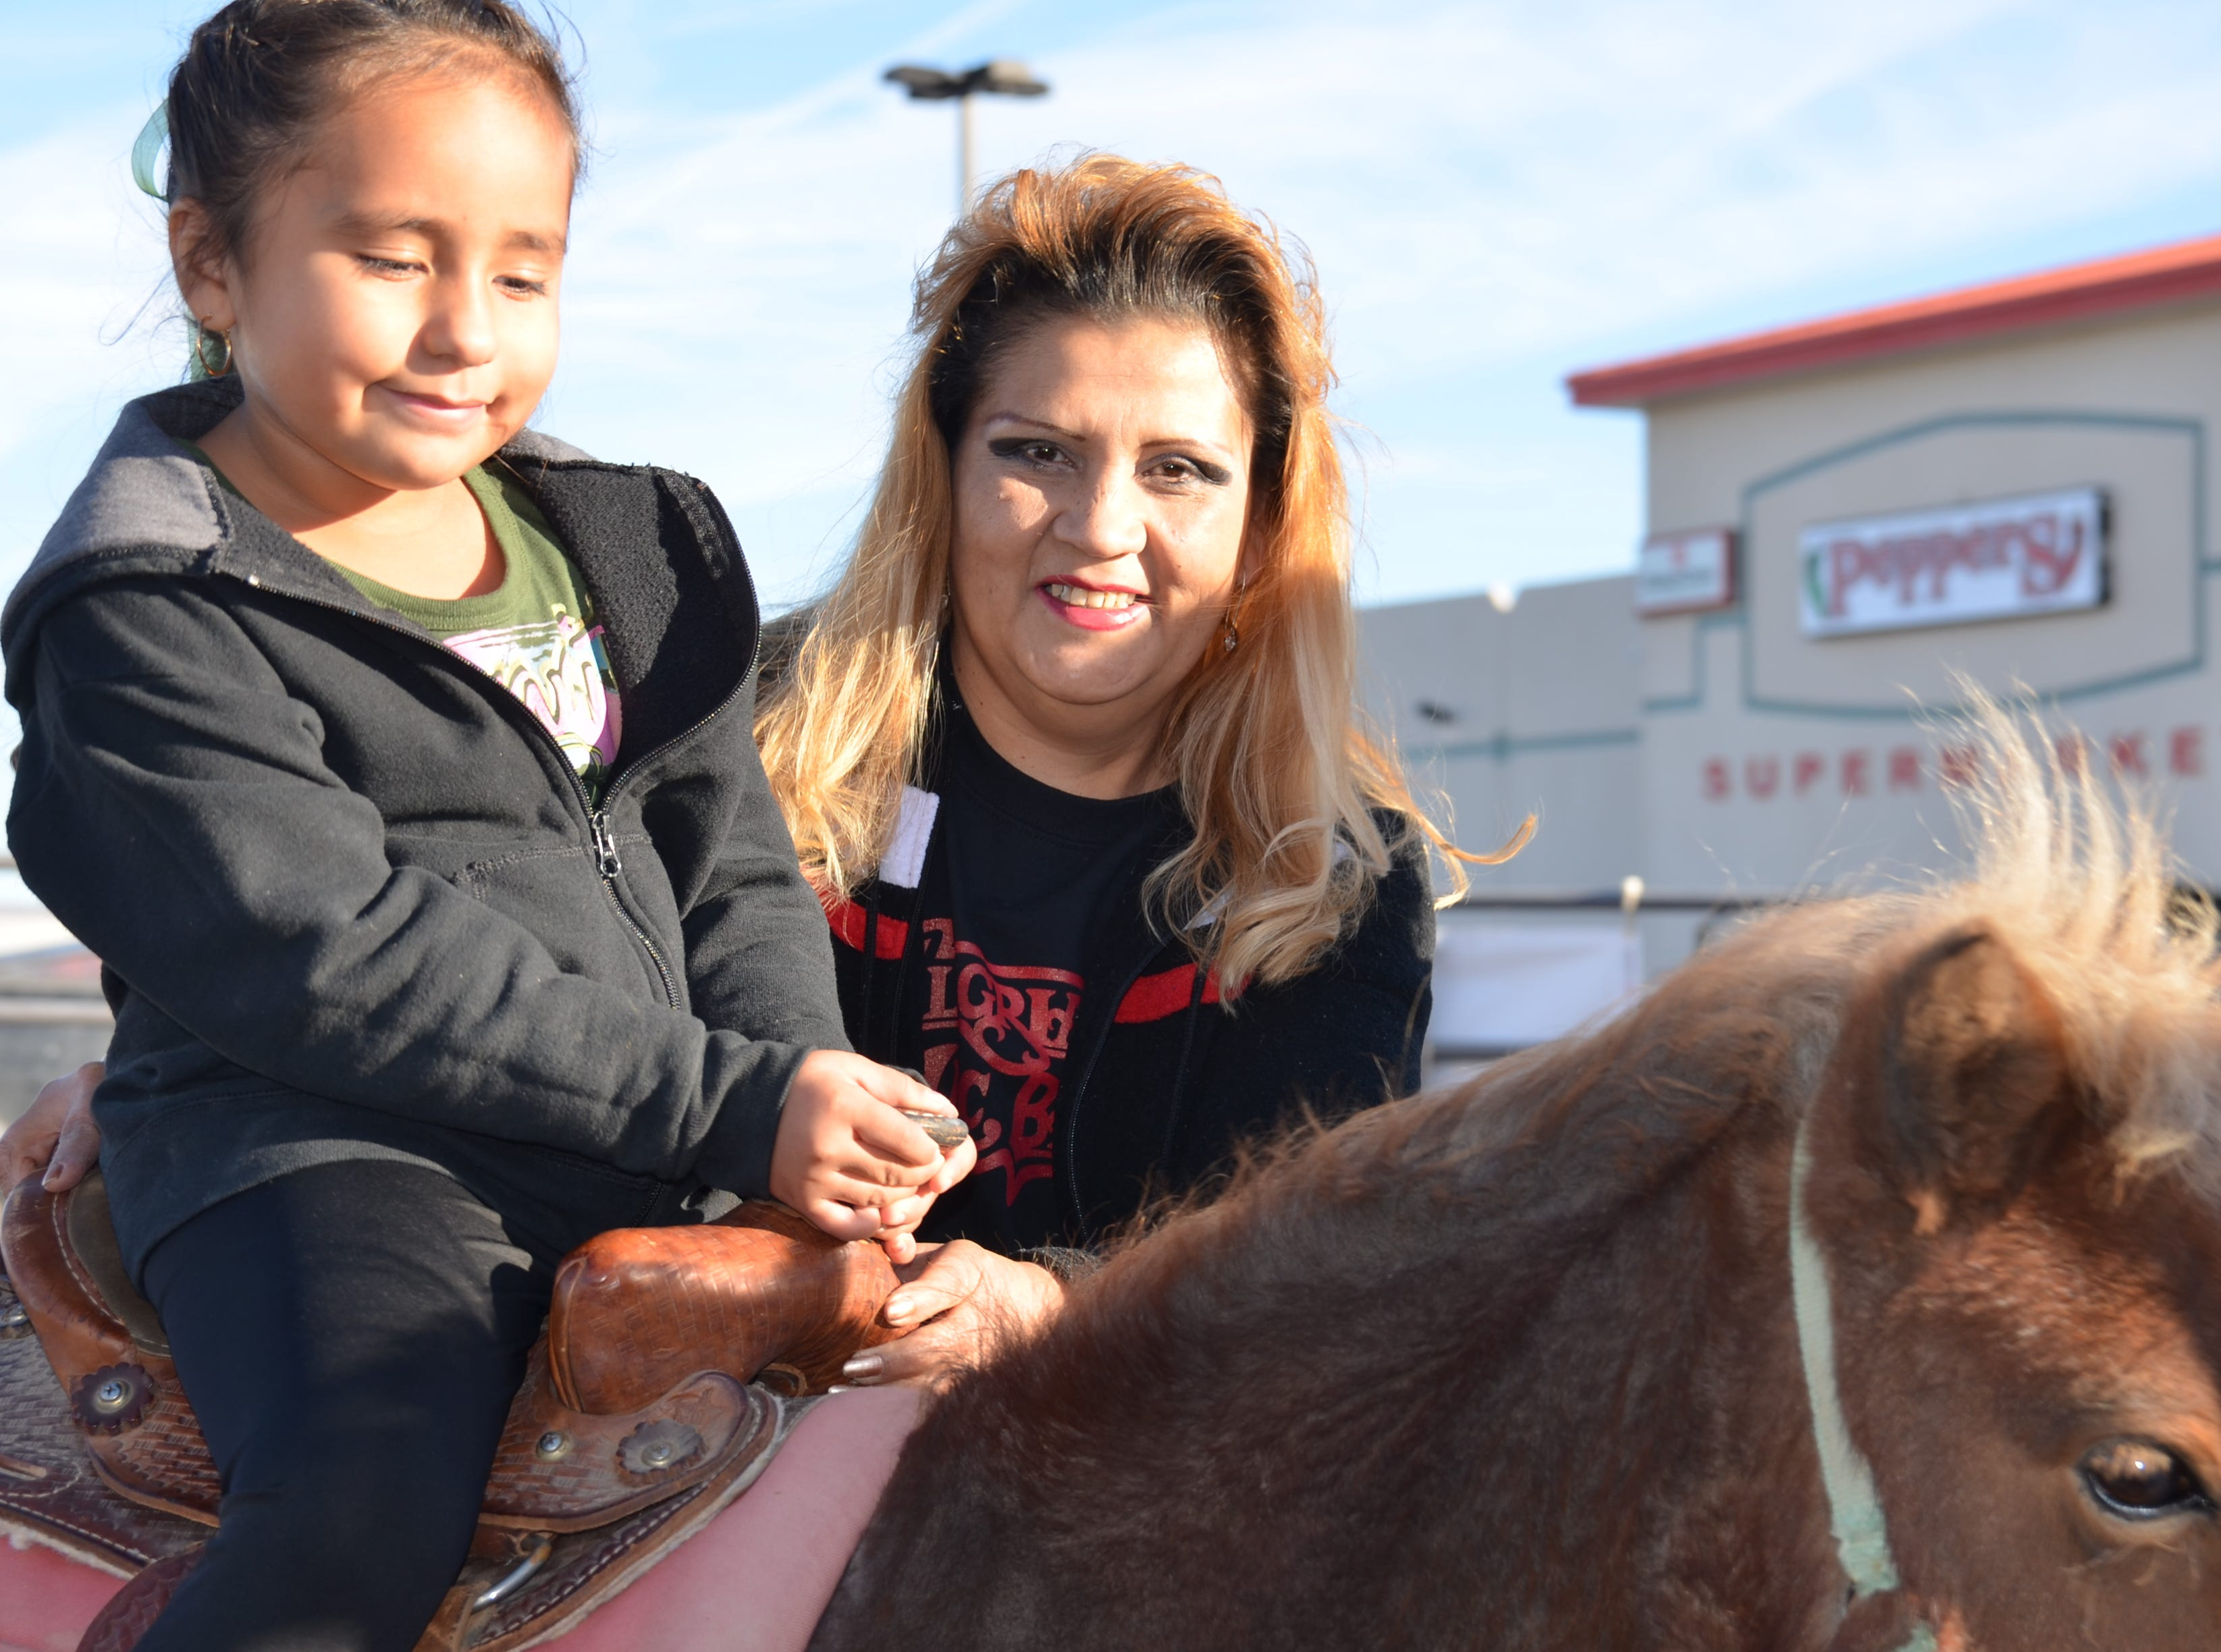 Ruby Marie Luera, 6, rides a pony while her mother, Josie Luera secures her ride.